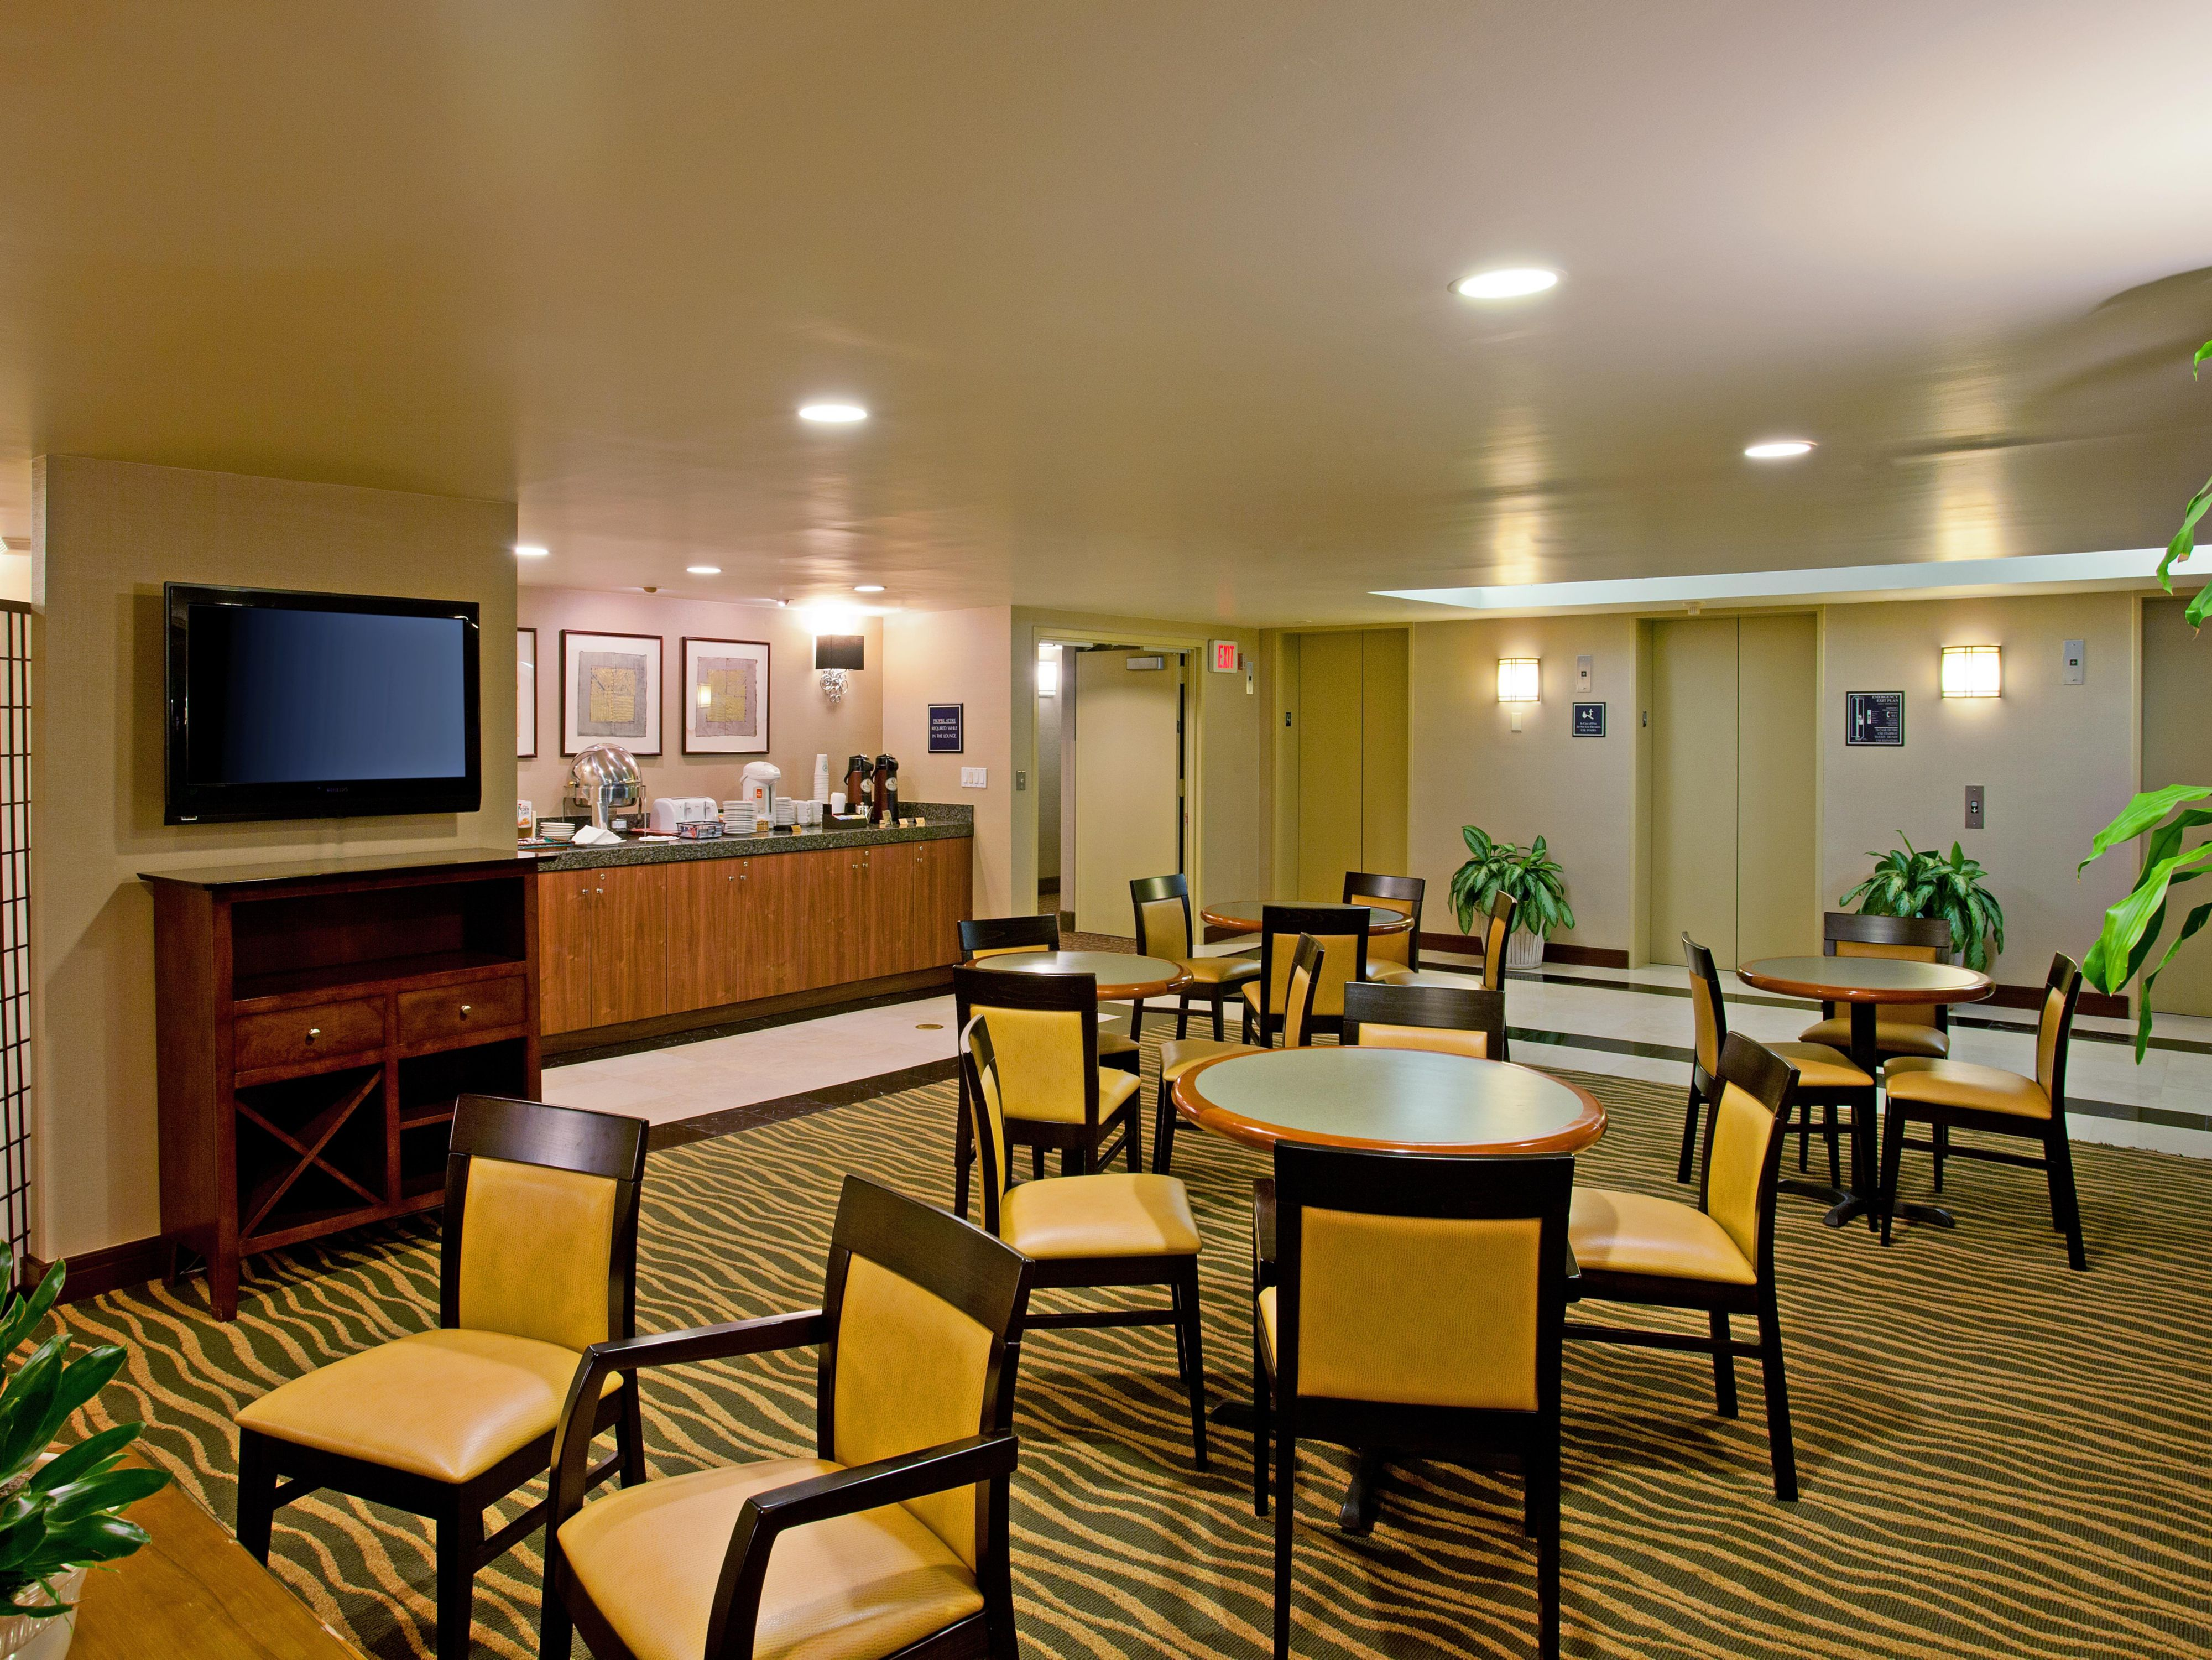 Executive floor rooms with upgrade amenities available